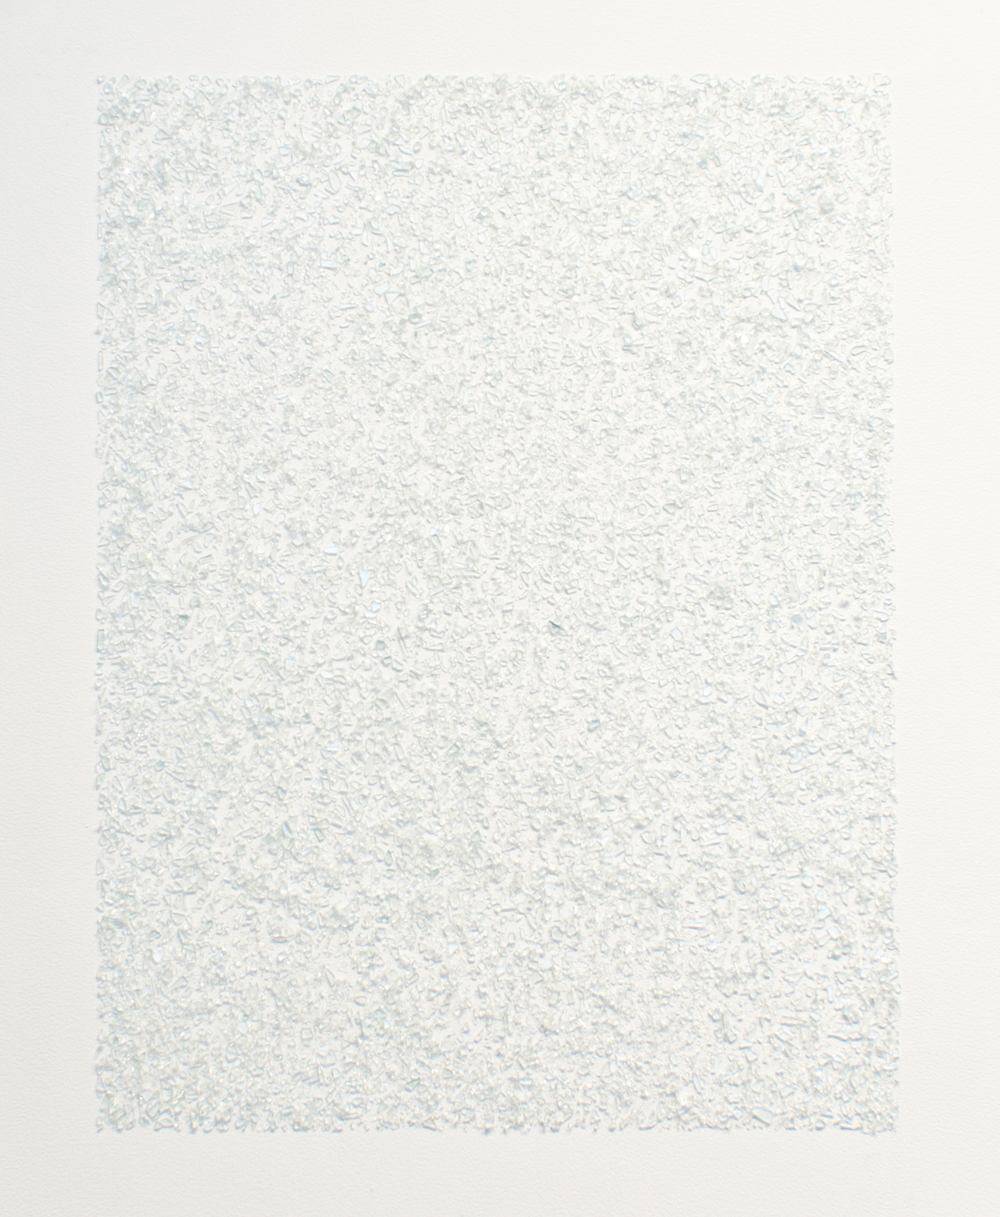 Ragna Róbertsdóttir   Glacier , 2015 crushed glass, adhesive dimensions variable